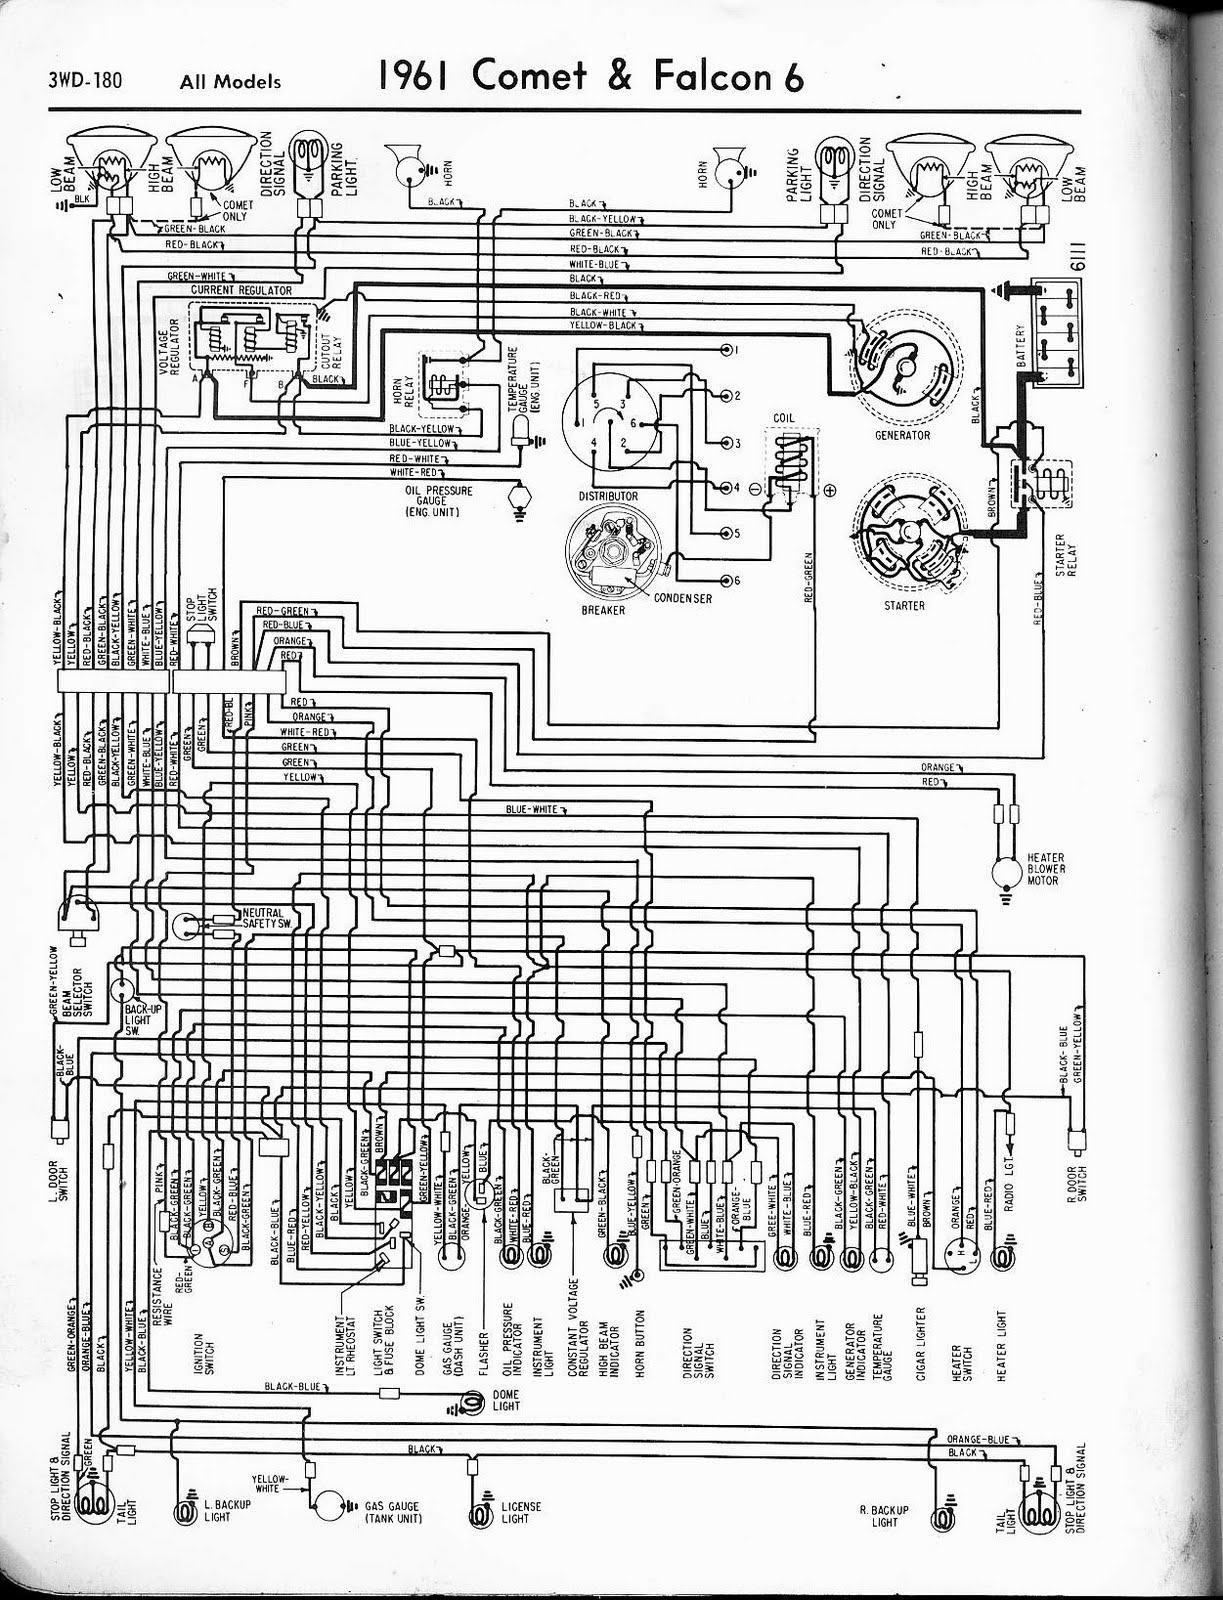 Honda Civic Cruise Control Wiring Expert Category Circuit Diagram Free Auto 1961 Ford Falcon Comet